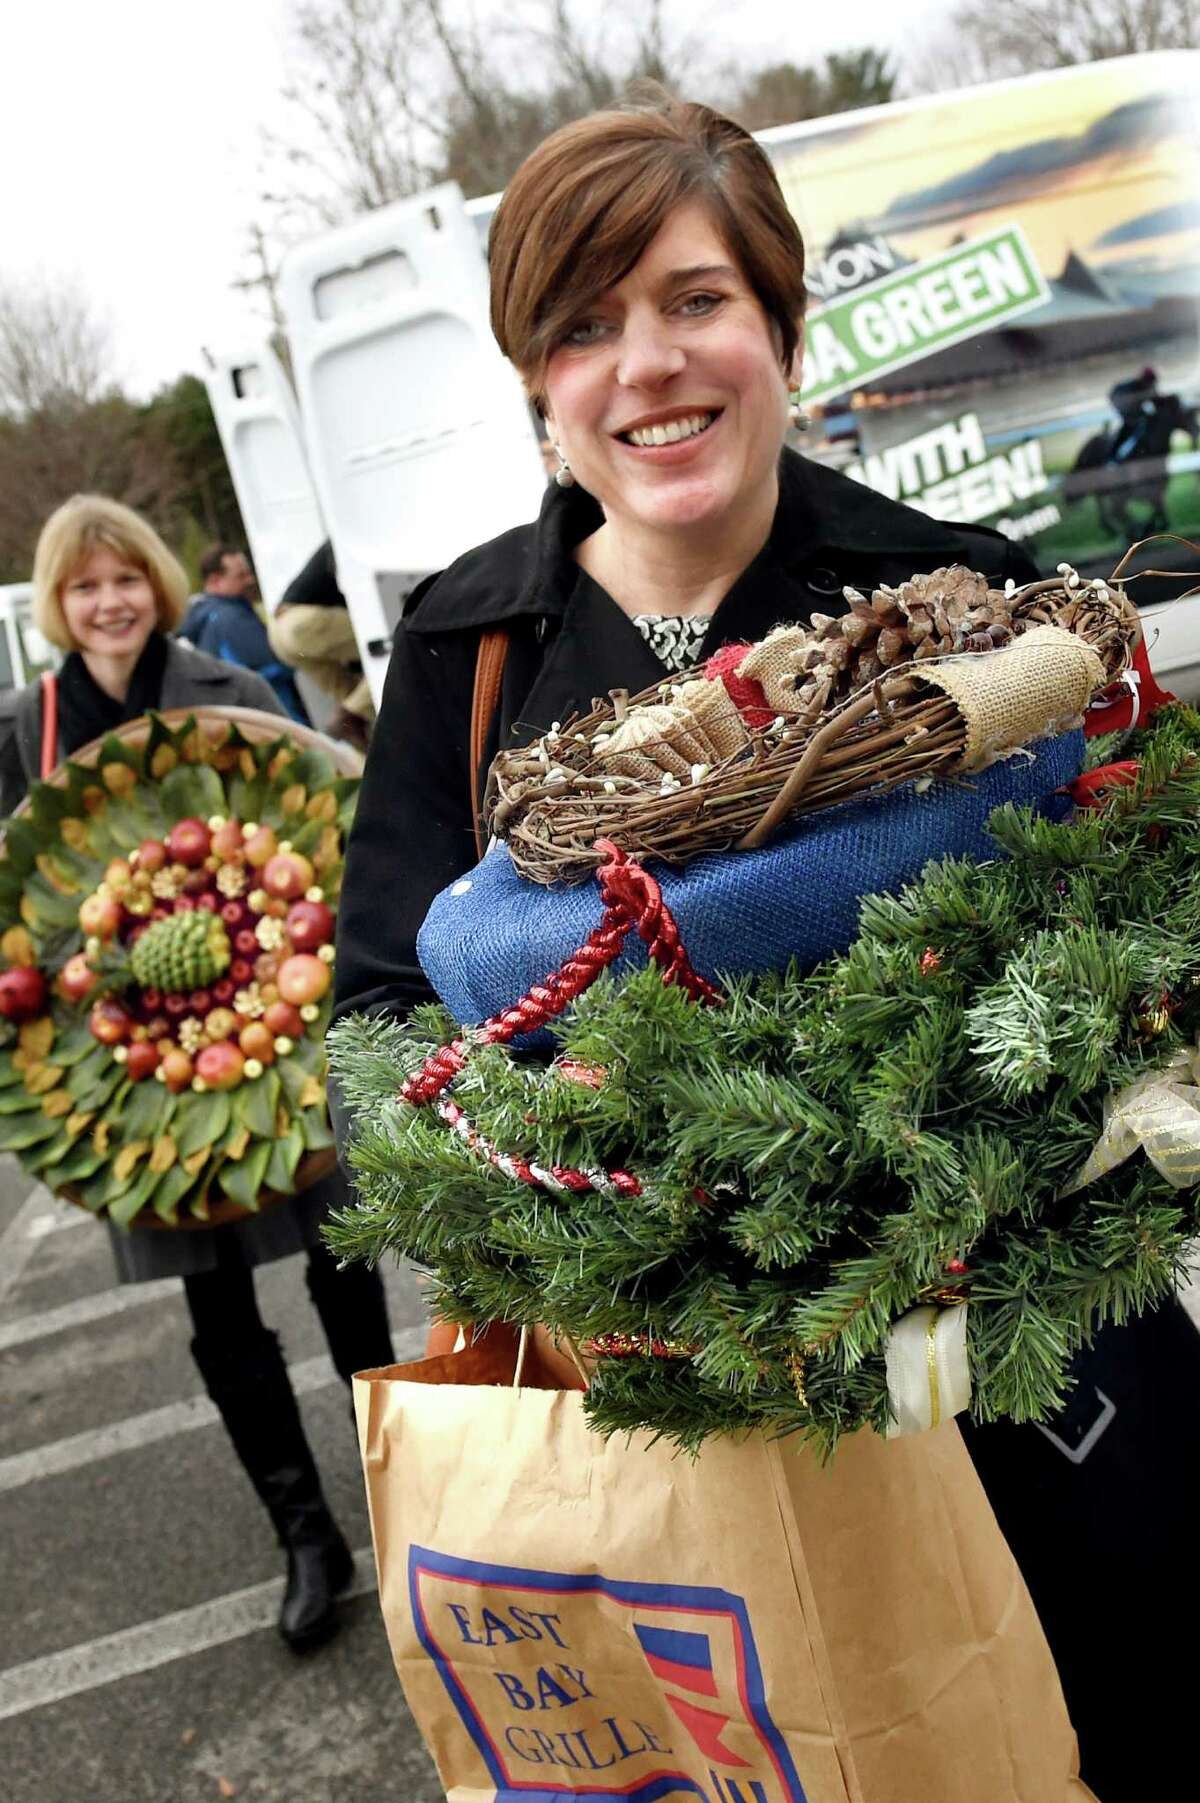 Times Union employees Jennifer Gish, left, and Tracy Ormsbee help deliver wreaths from the Times Union's Circles of Caring contest on Tuesday, Dec. 15, 2015, at Omni Senior Living of Guilderland in Guilderland, N.Y. (Cindy Schultz / Times Union)